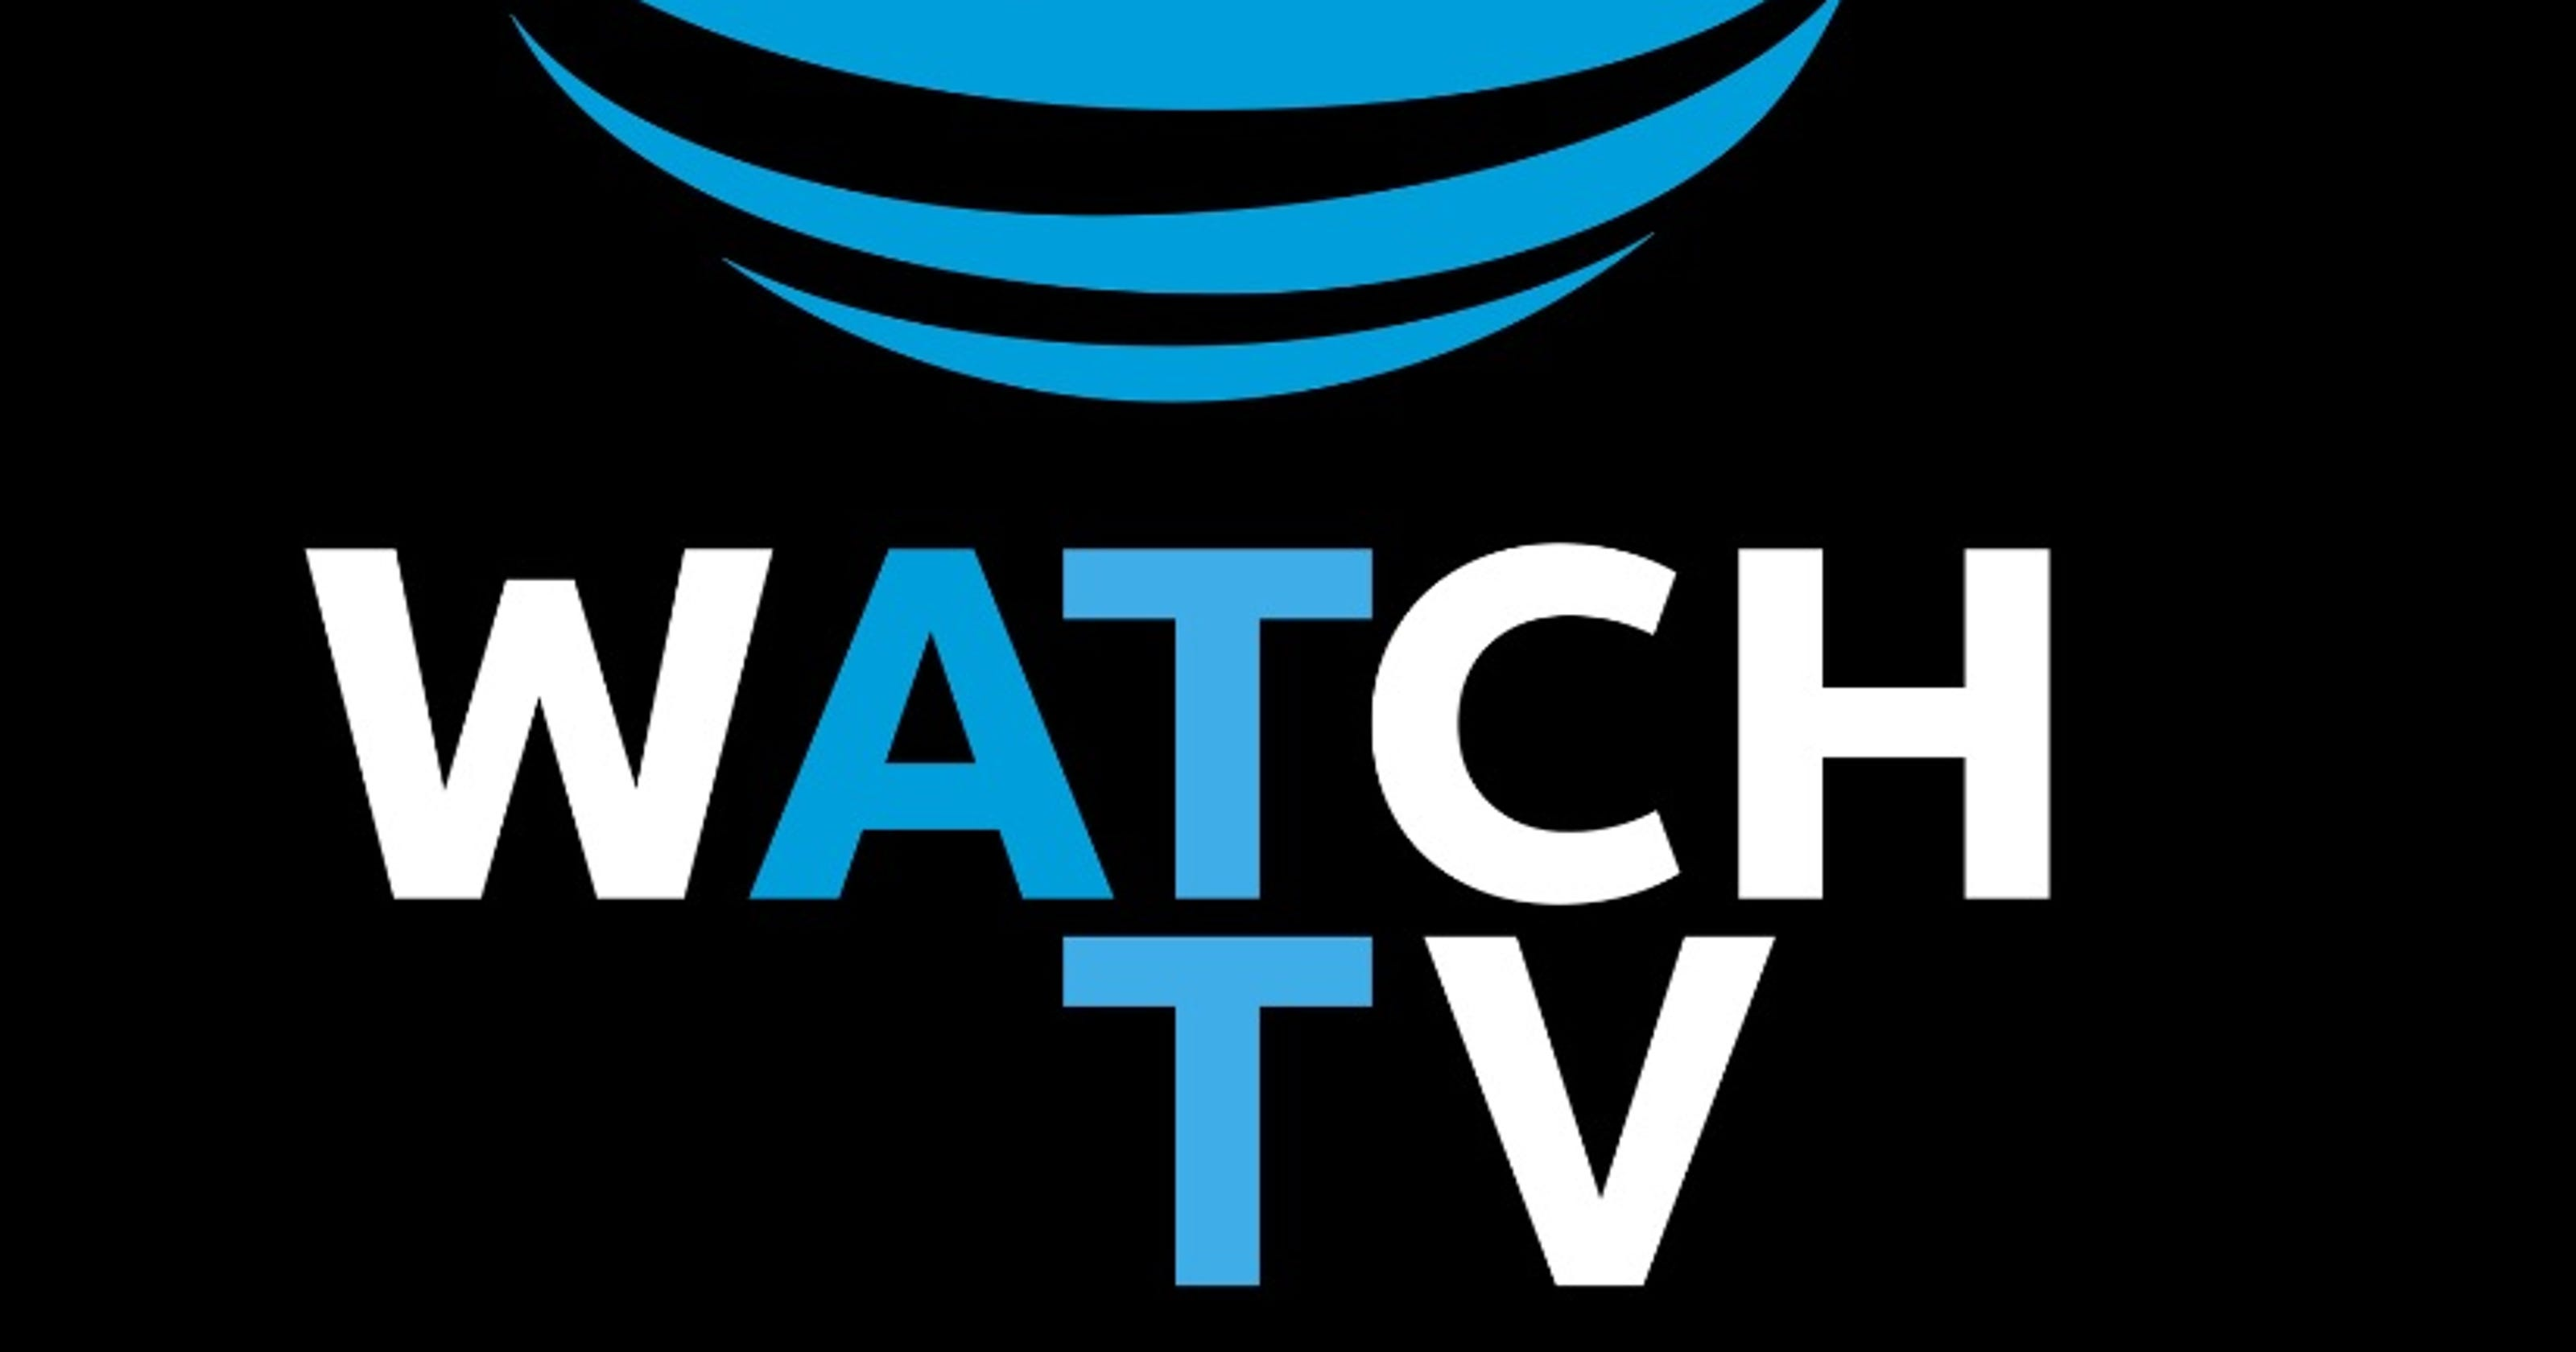 Att Perks At Work >> New At T Unlimited Wireless Plans Lets Cord Cutters Use Watchtv For Free